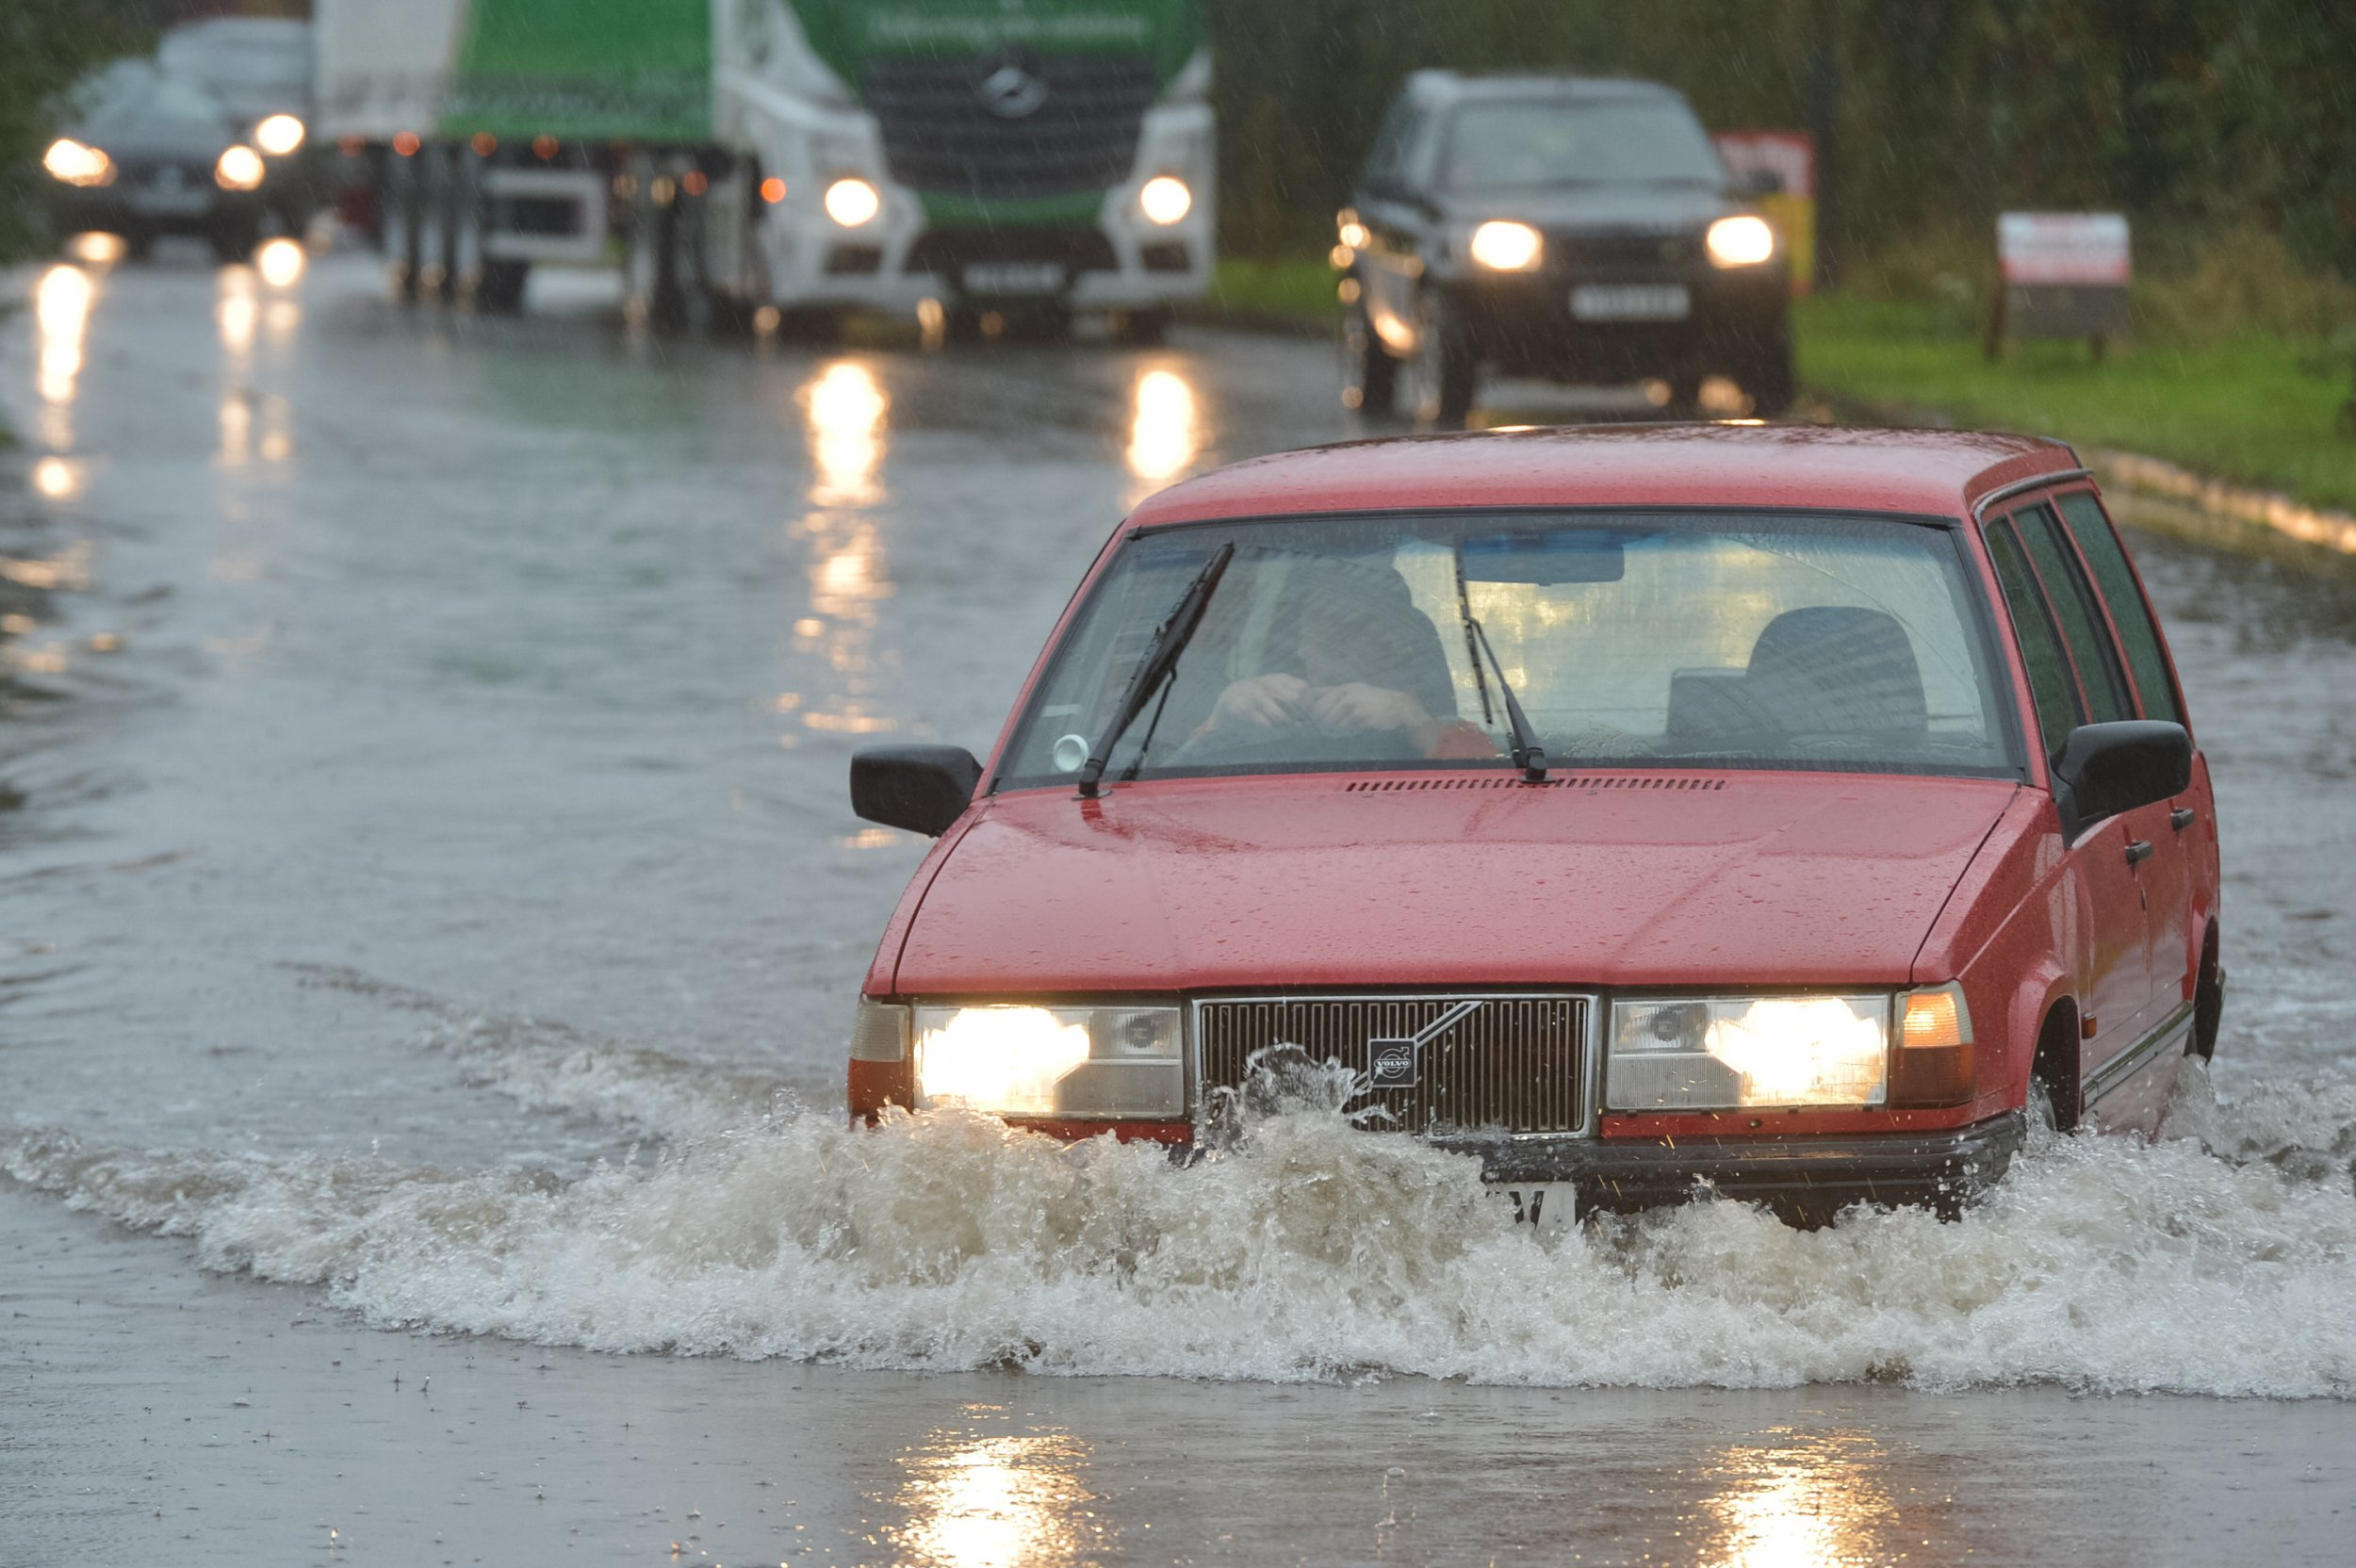 An old Volvo ploughs through a flooded road, the only access to Skippingdale Retail Park in Scunthorpe, North Lincs., which is now home to a number of stranded drivers unwilling to take the risk, September 20 2018.